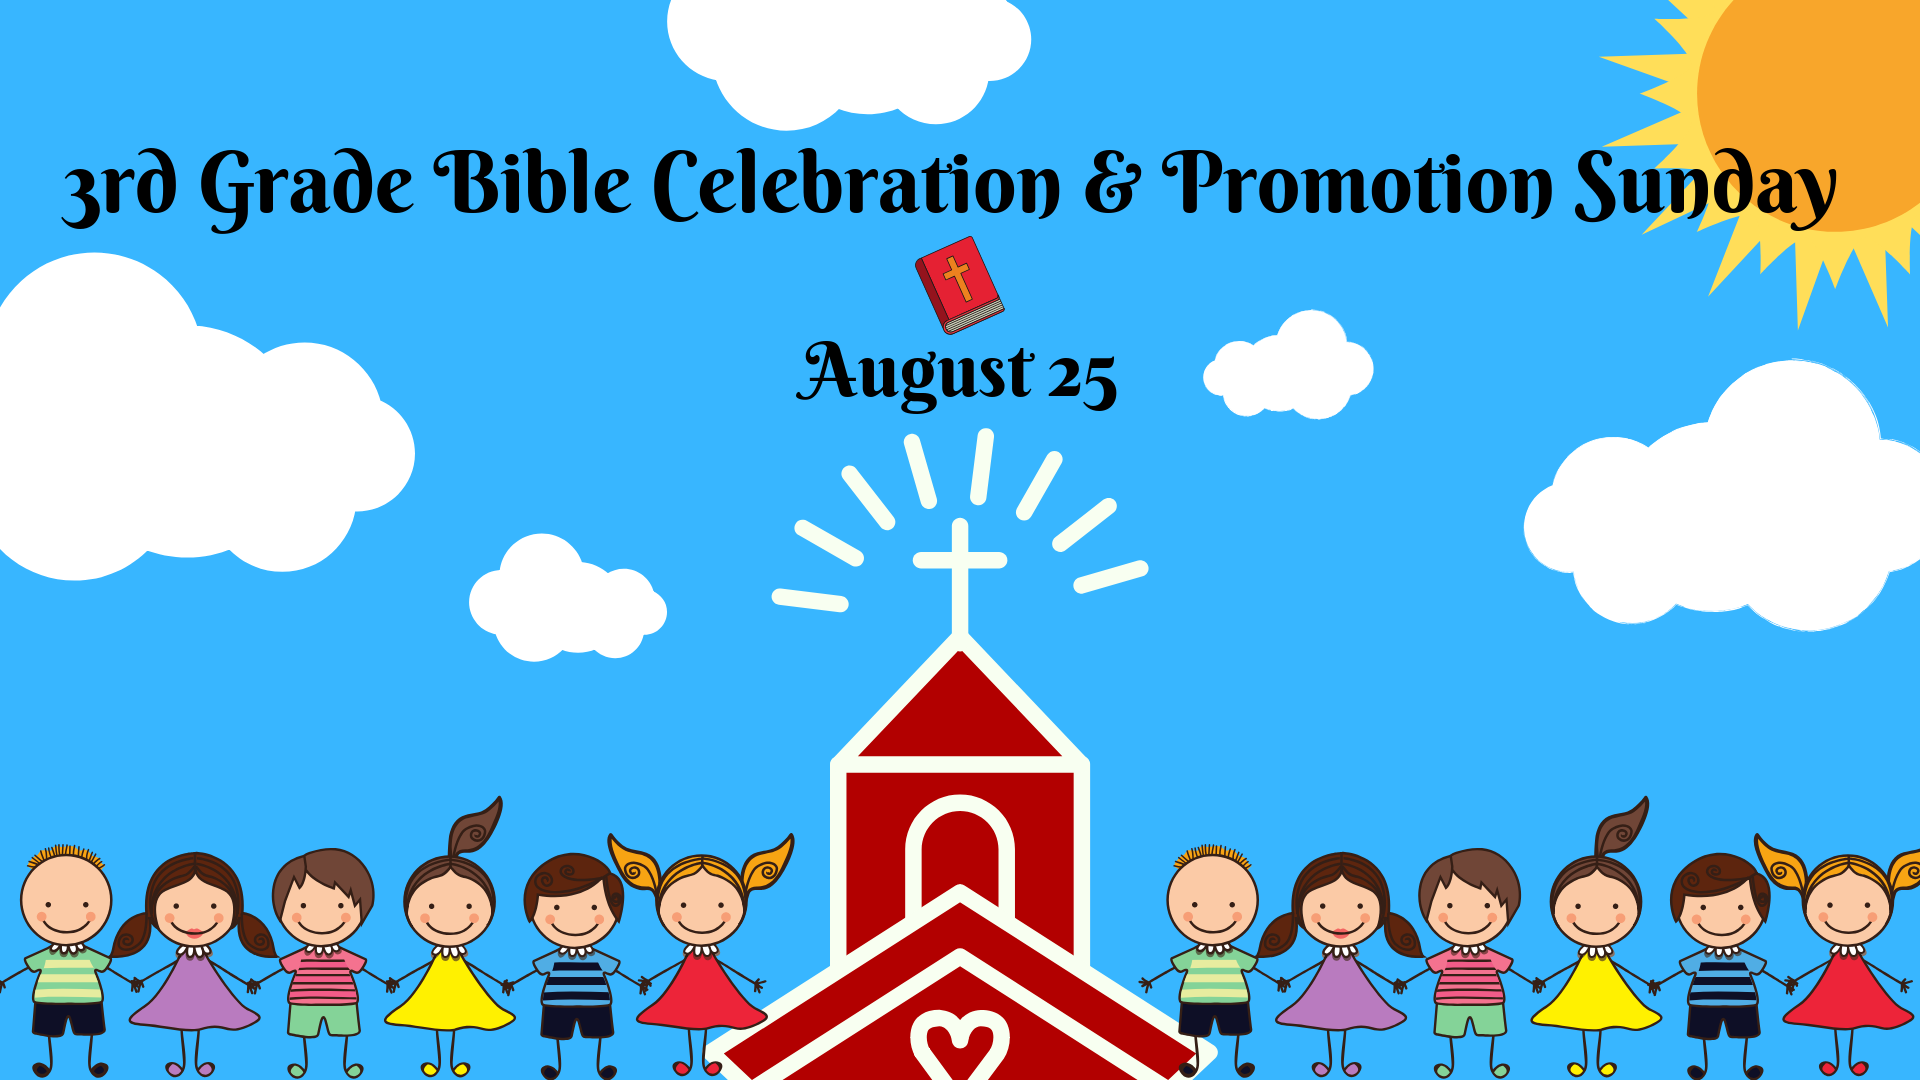 Copy of 3rd Grade Bible Celebration and Promotion Sunday.png